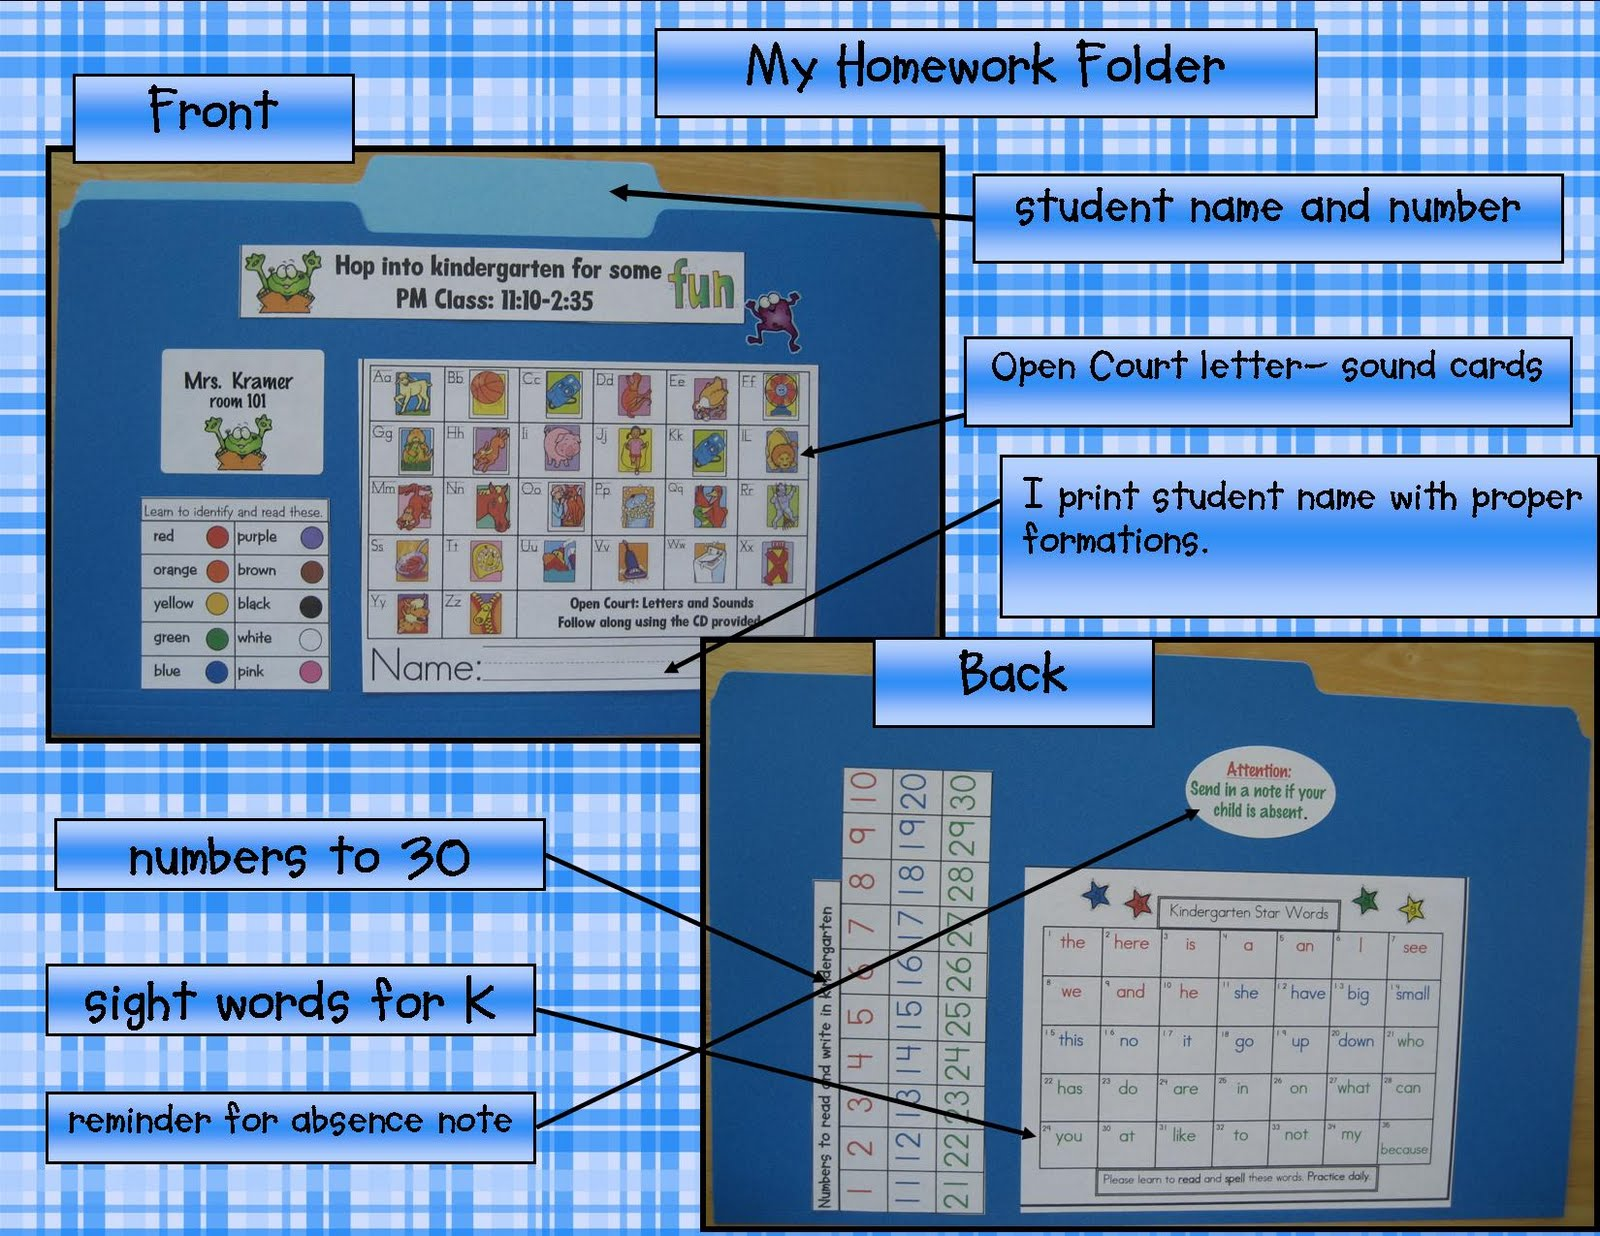 Kindergarten Crayons: I am obsessed with the ultimate hw folder...